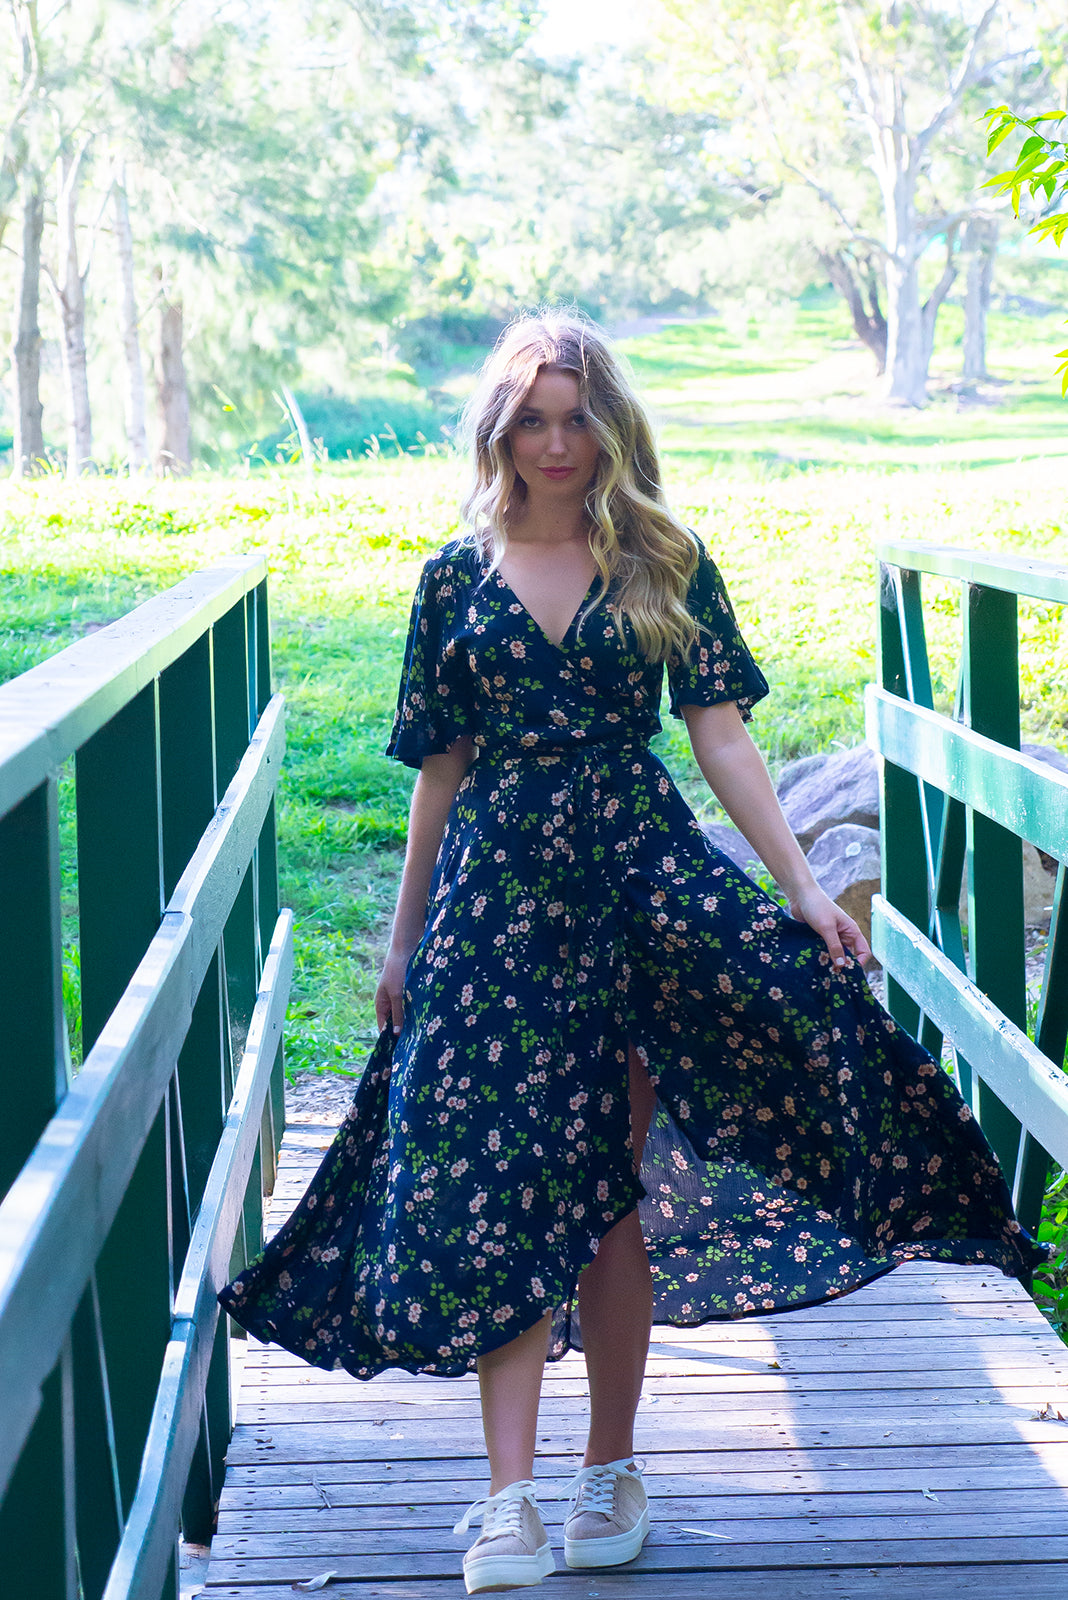 Cinnamon Navy Celeste Maxi Wrap Dress features a beautiful classic ditzy daisy floral bohemian print on a soft woven crinkle textured rayon a, it has a petal sleeve and a flattering adjustable wrap waist